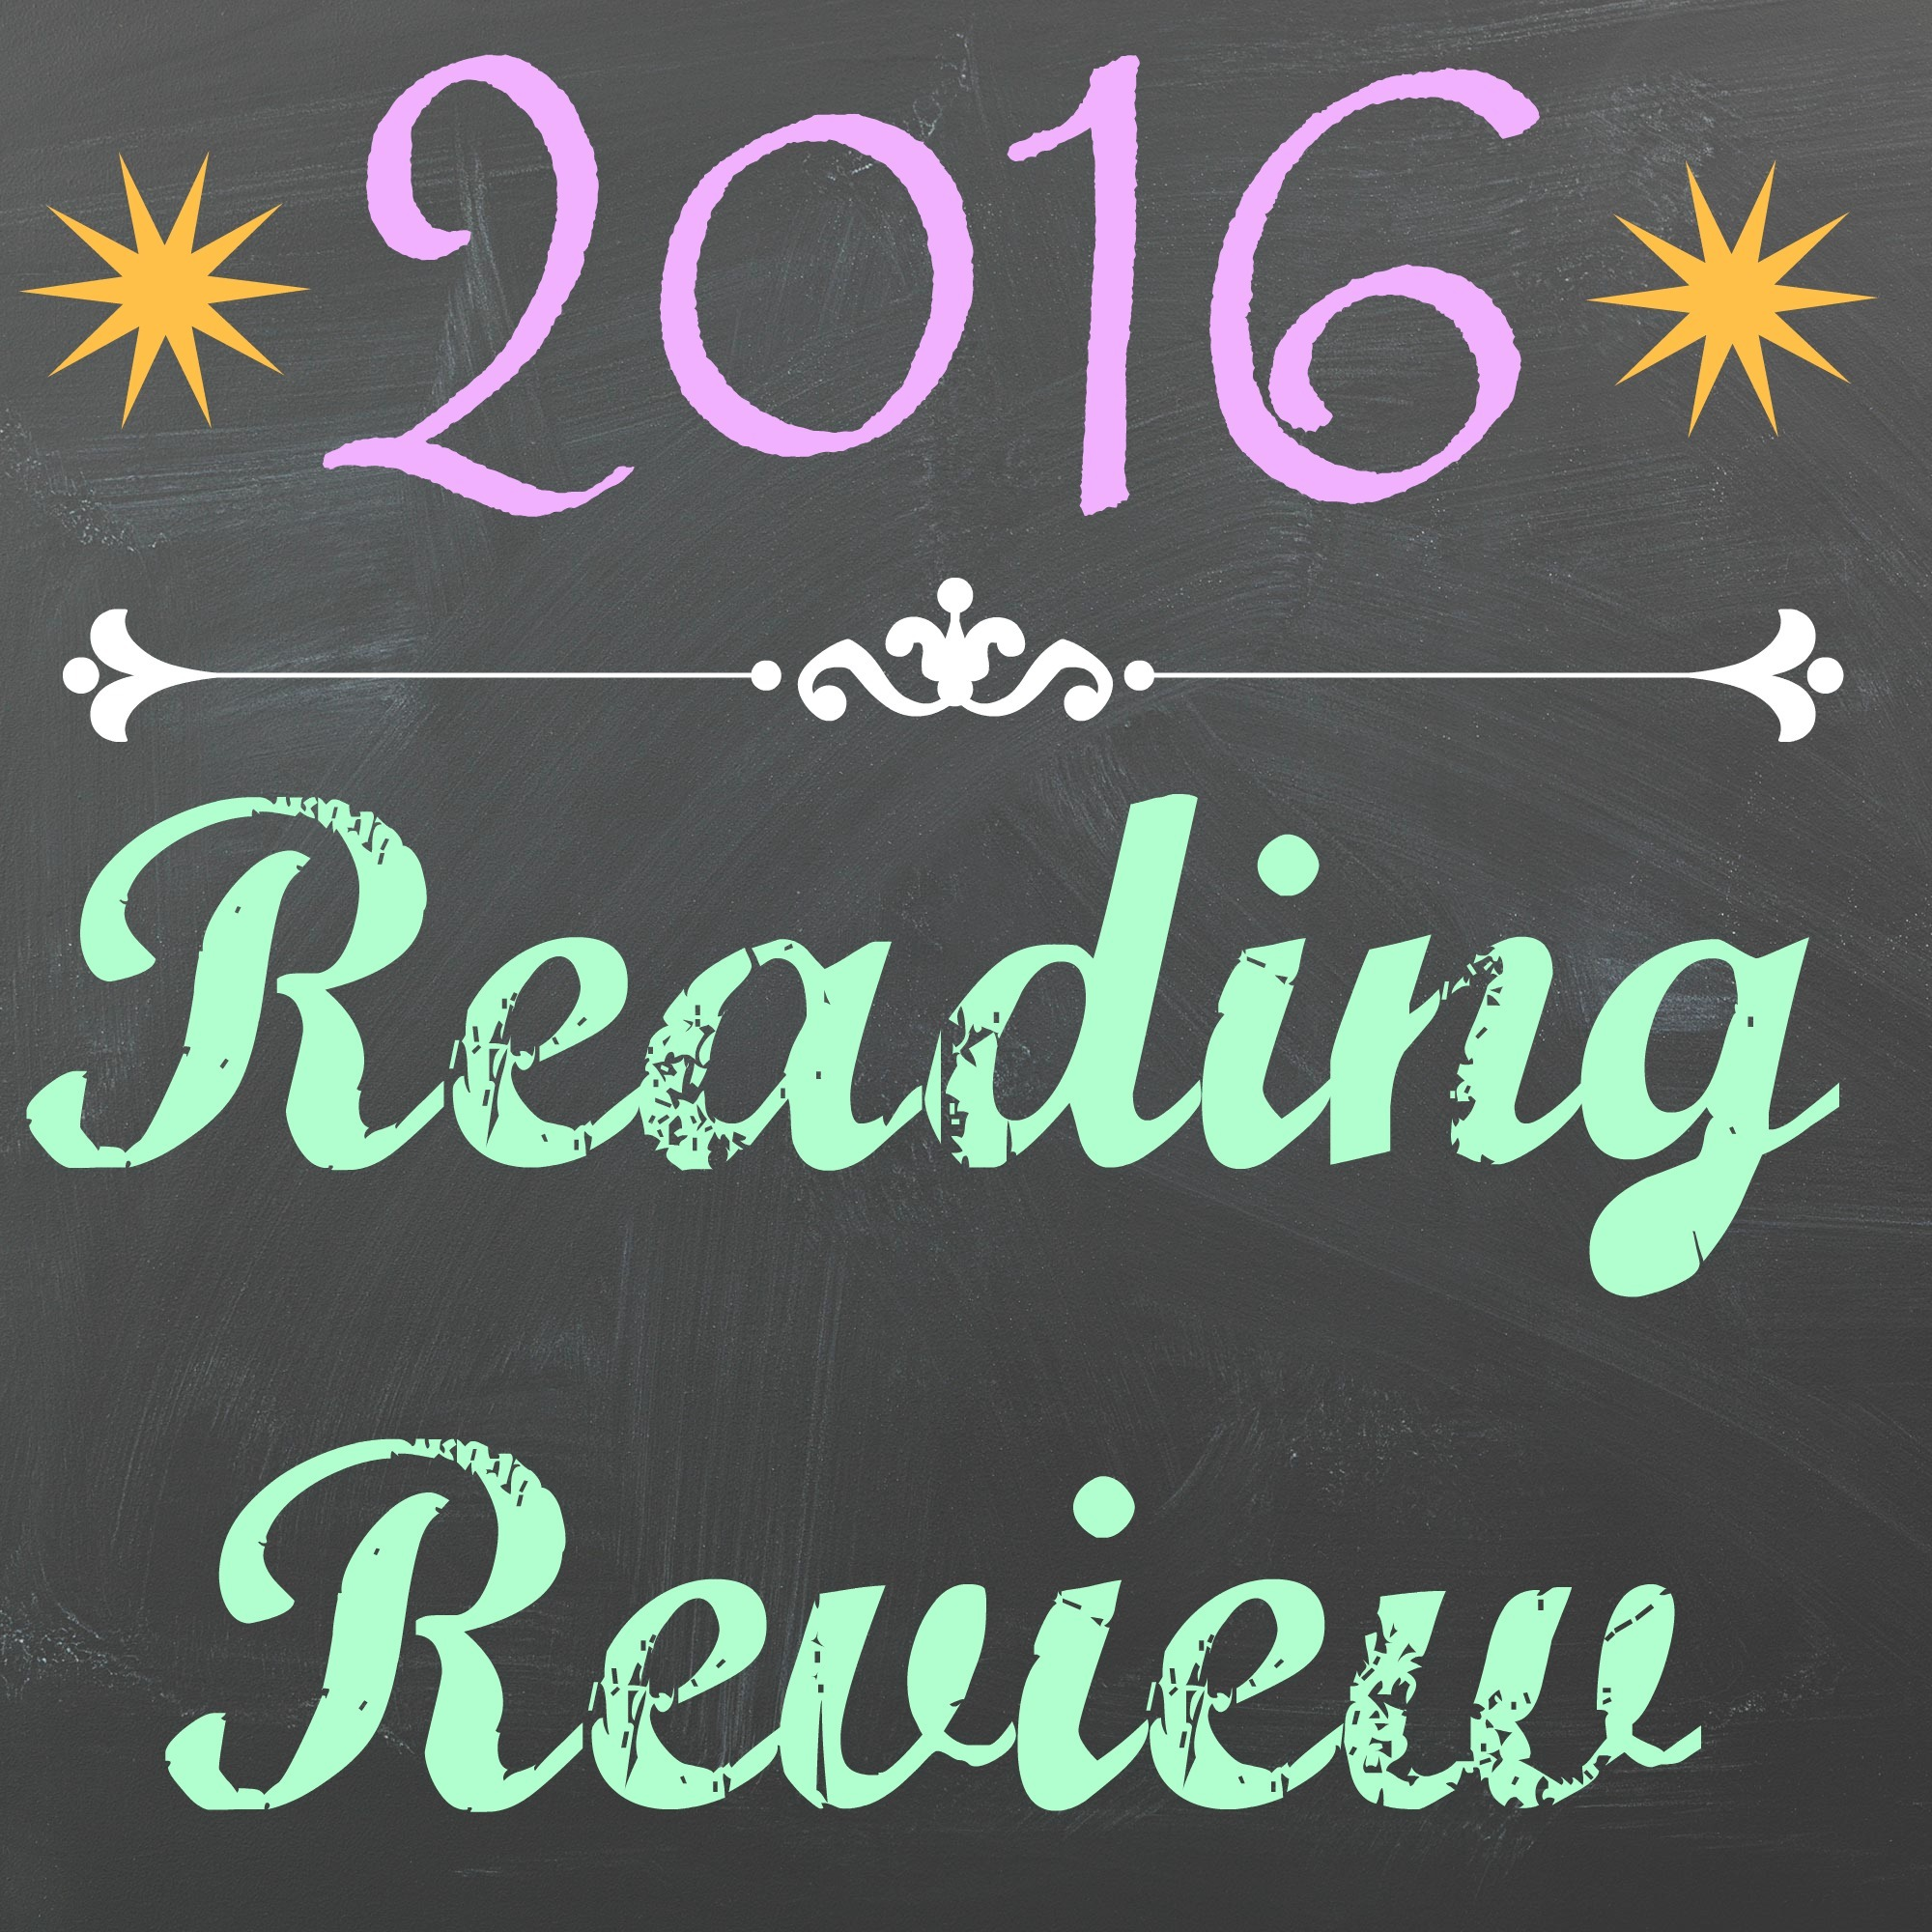 Reading Review: An End-of-Year Reading Wrap-Up and My Favorite Books of 2016